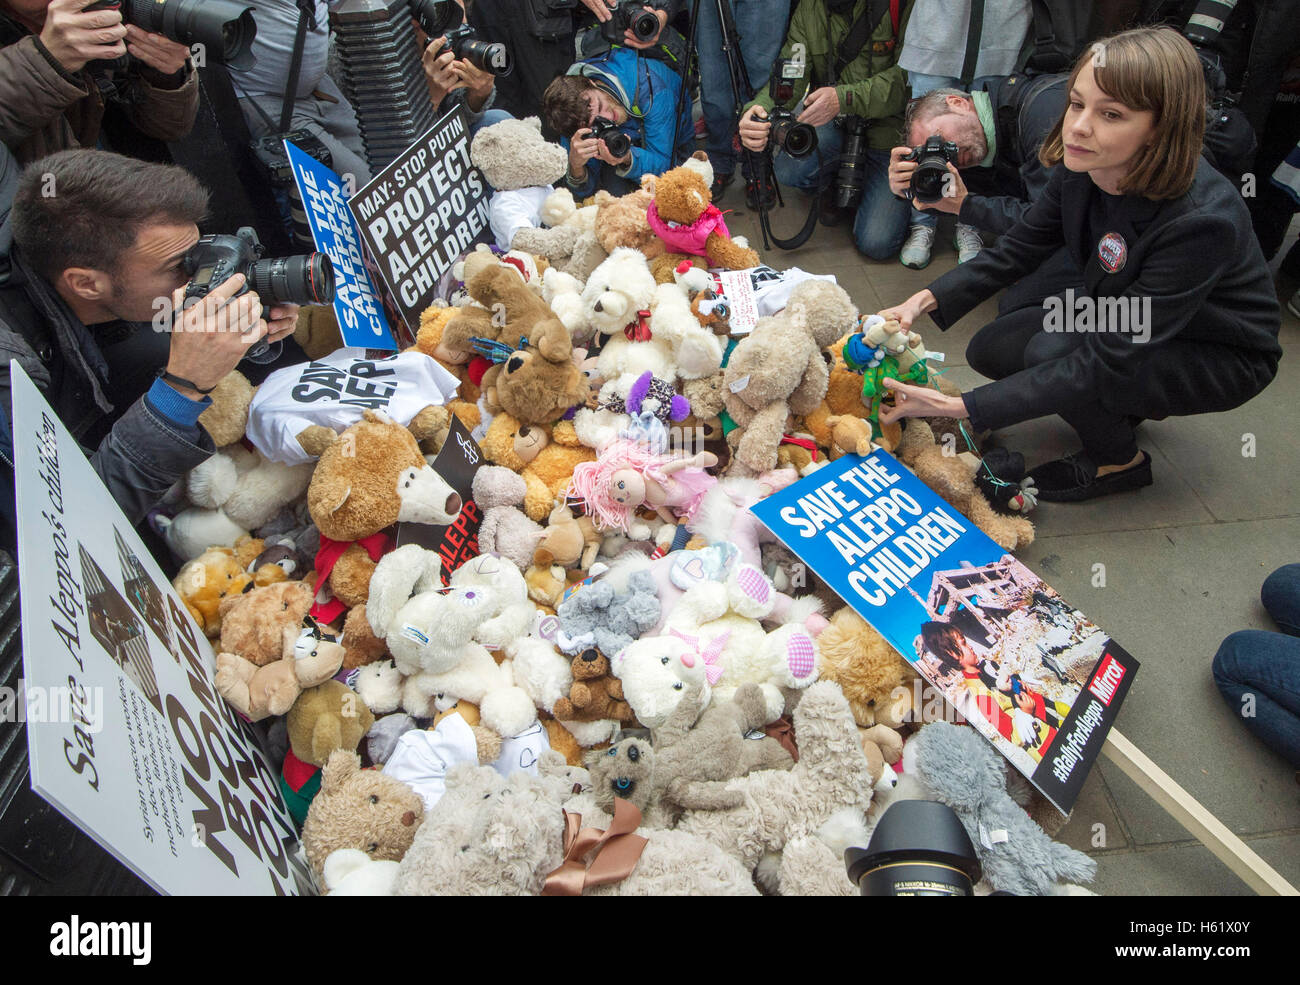 Downing Street/Whitehall.Actress Carey Mulligan places a teddy bear in Whitehall calling on the government to save - Stock Image